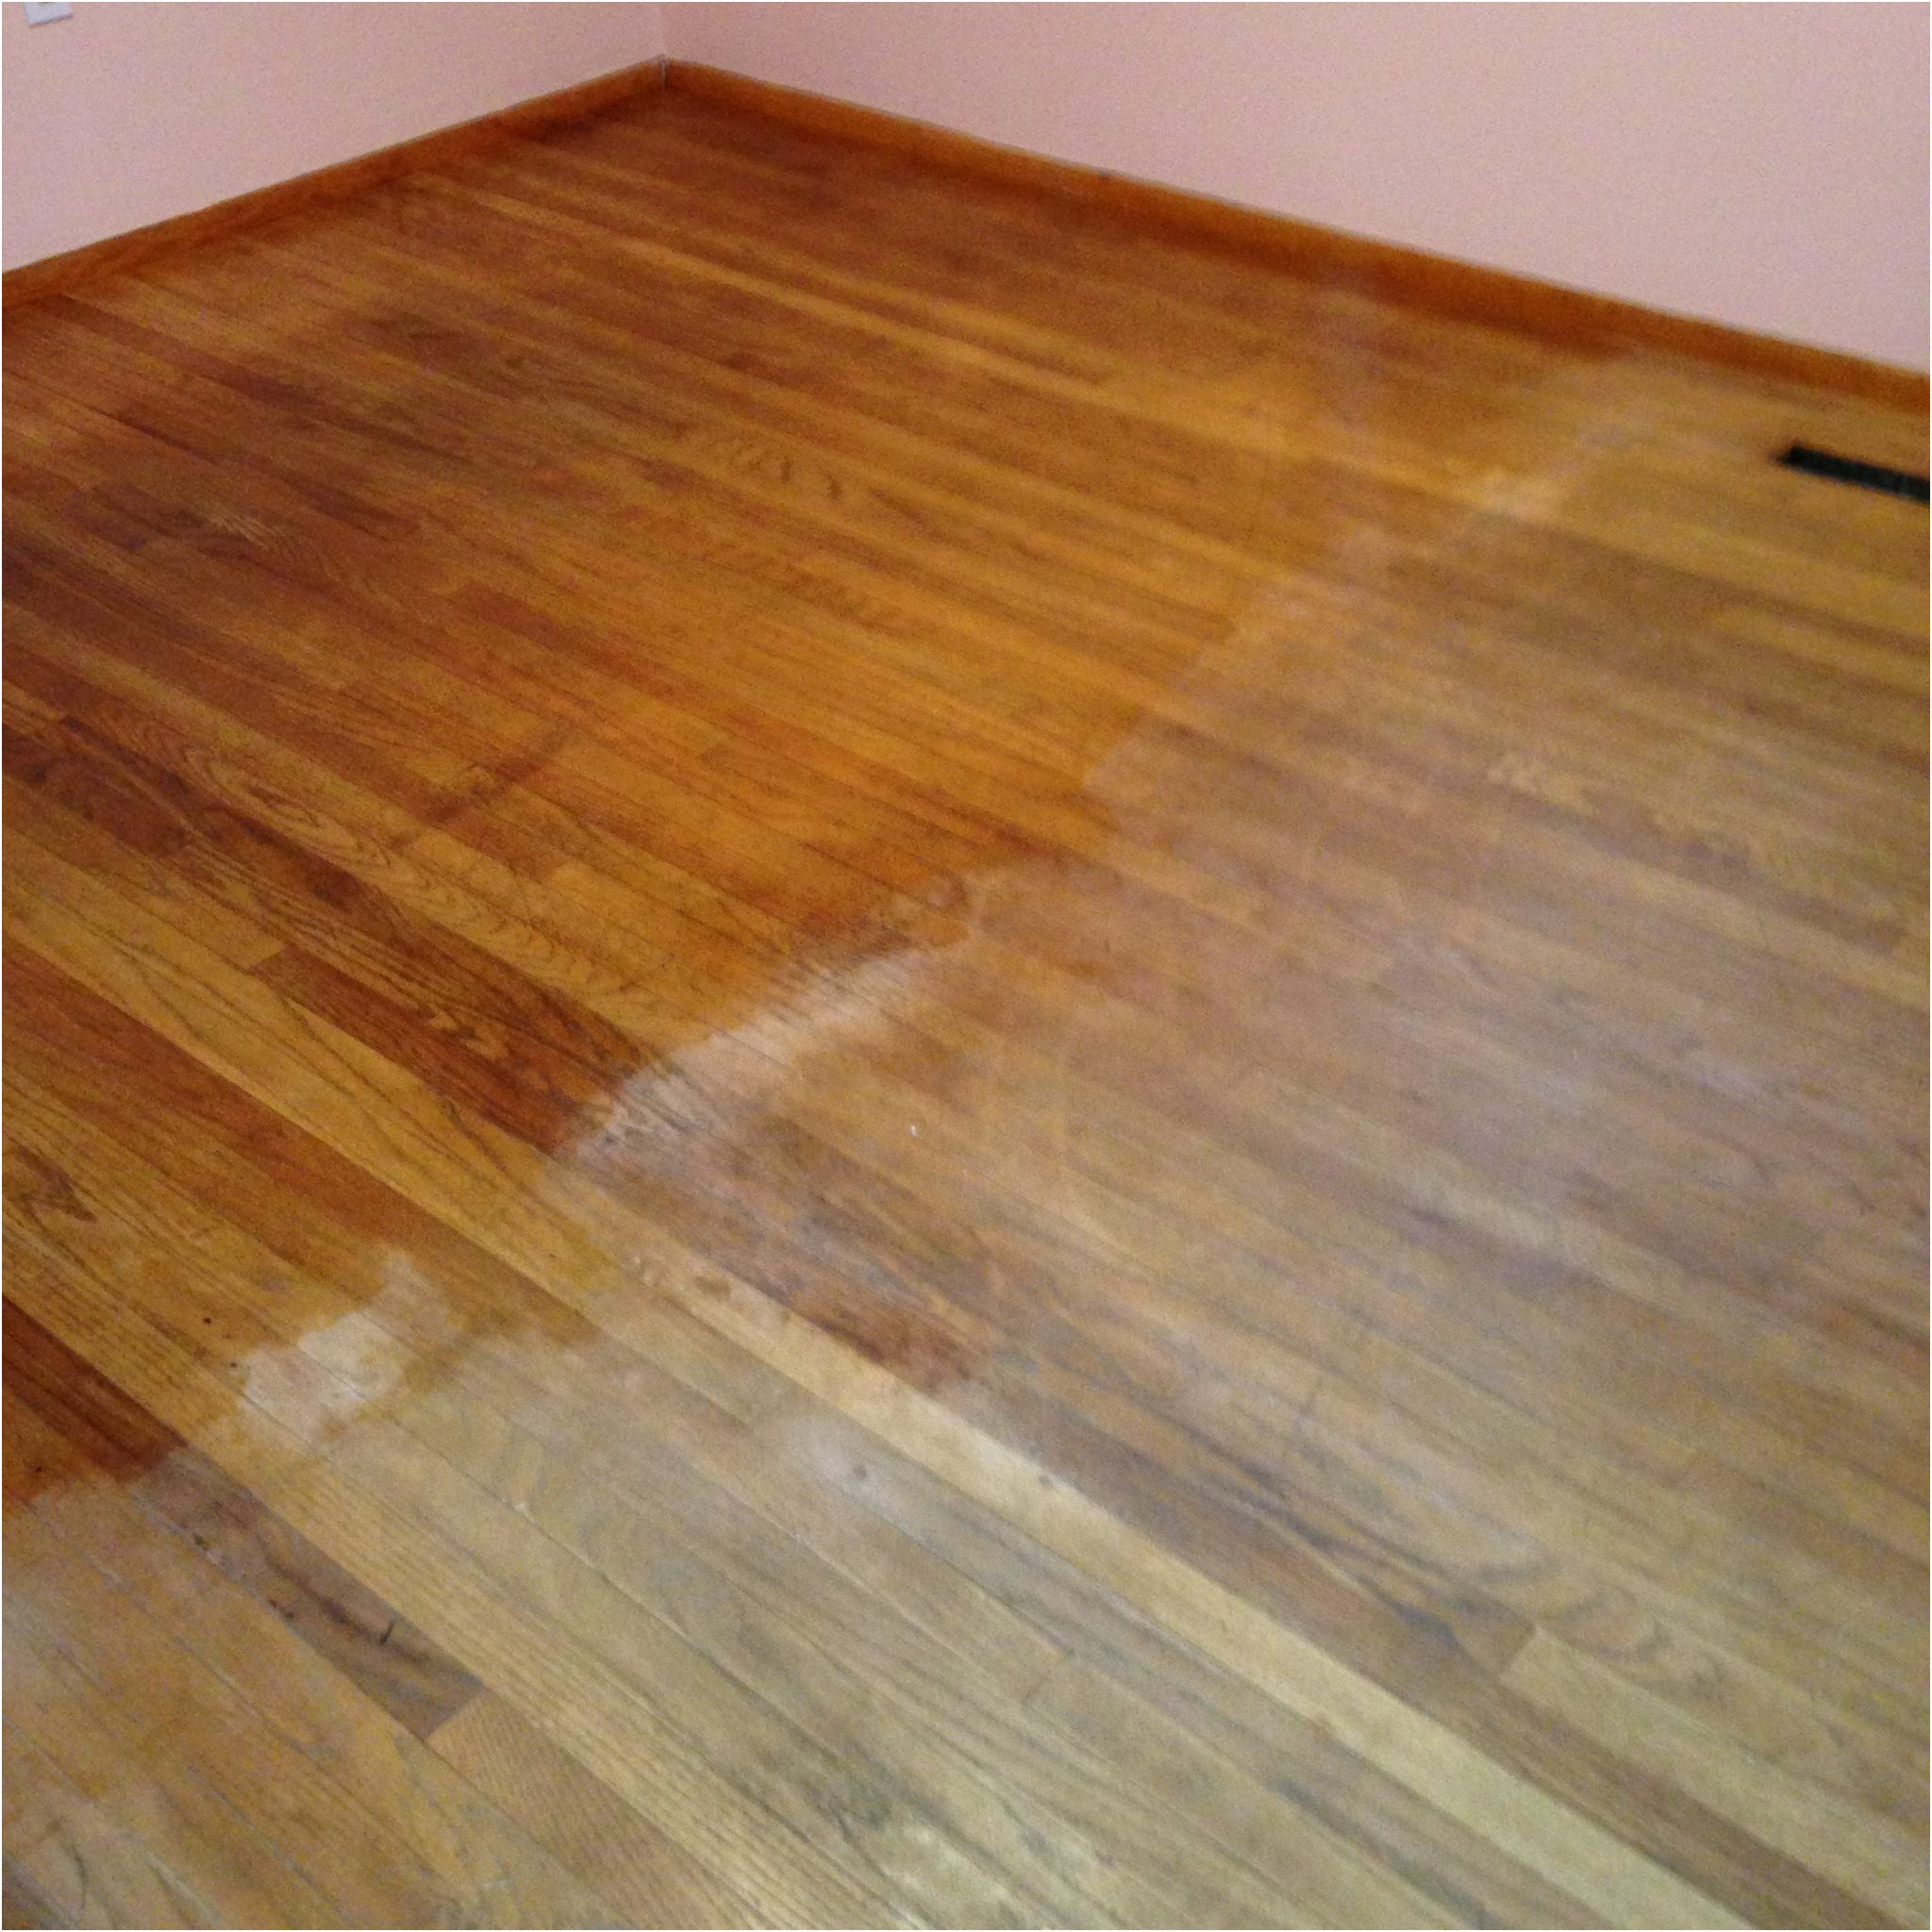 hardwood floor installation roanoke va of how much is hardwood flooring elegant aged oak flooring from intended for how much is hardwood flooring beautiful old english scratch cover wood floor of how much is